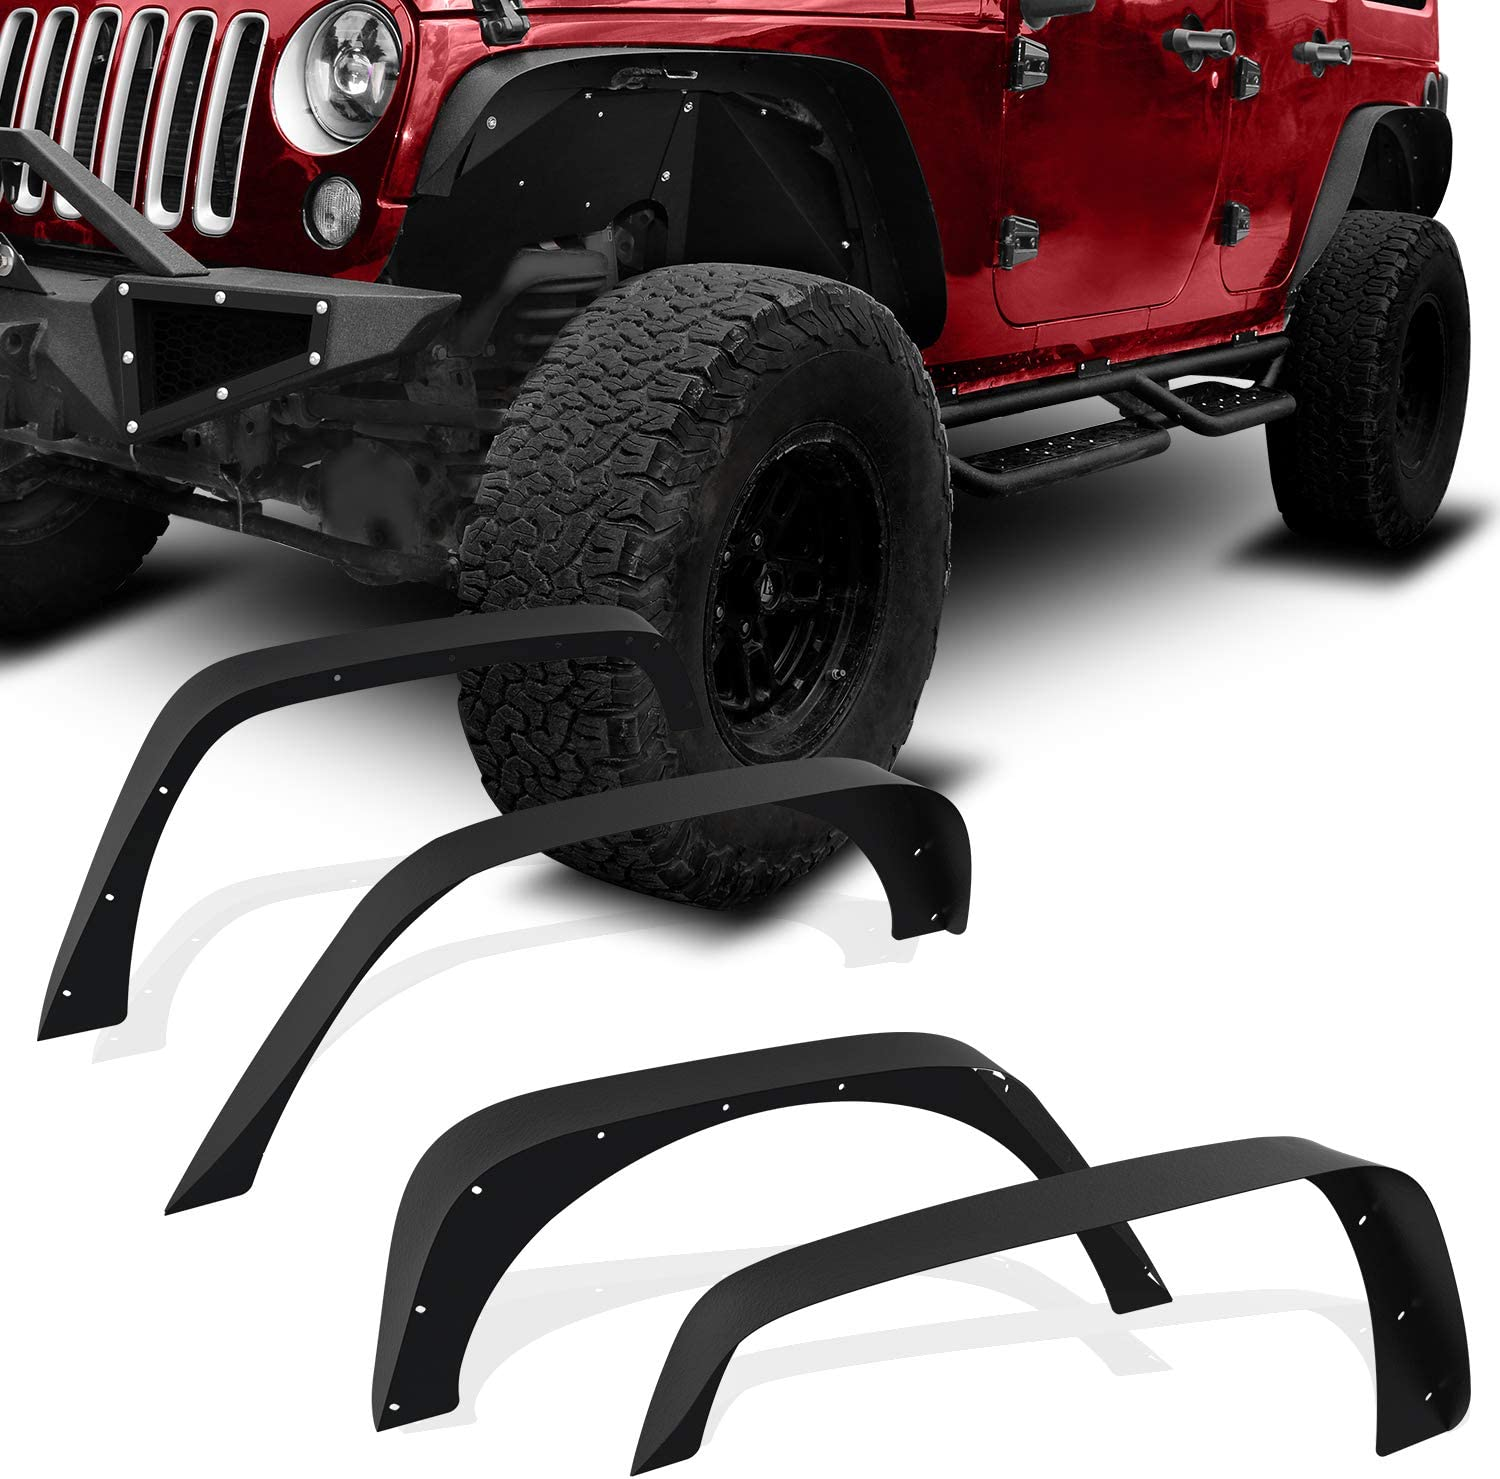 YITAMOTOR Steel Fender Flares Kit Compatible for 2007-2018 Jeep ...